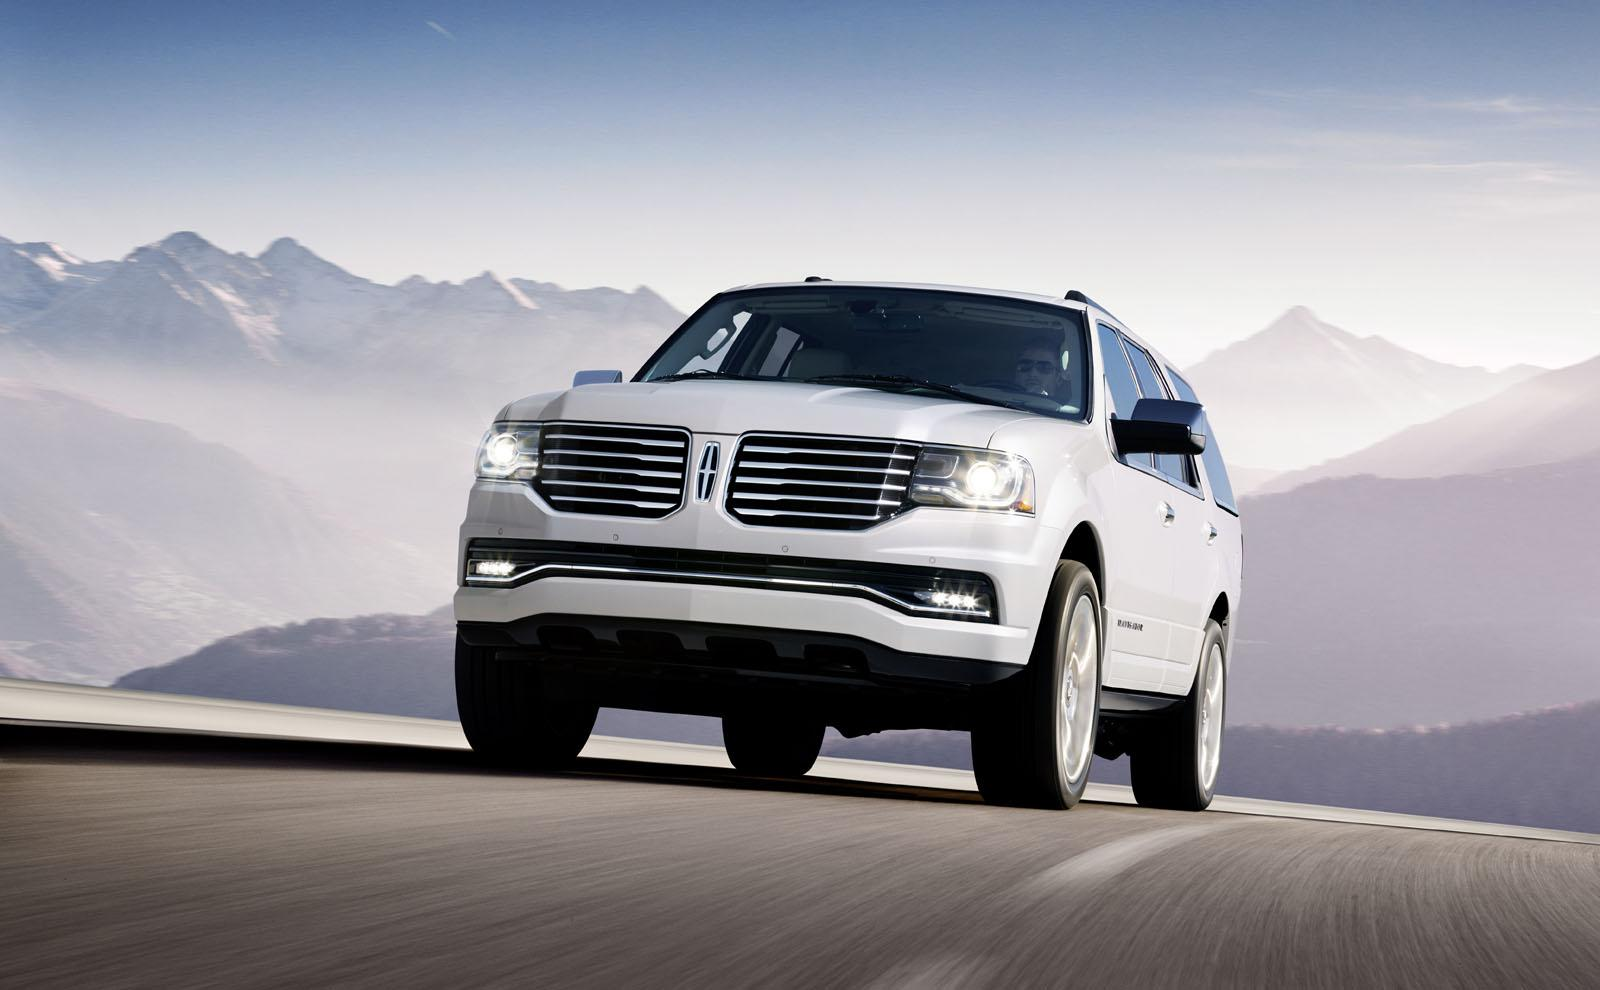 2015 lincoln navigator revealed ahead of chicago auto show. Black Bedroom Furniture Sets. Home Design Ideas